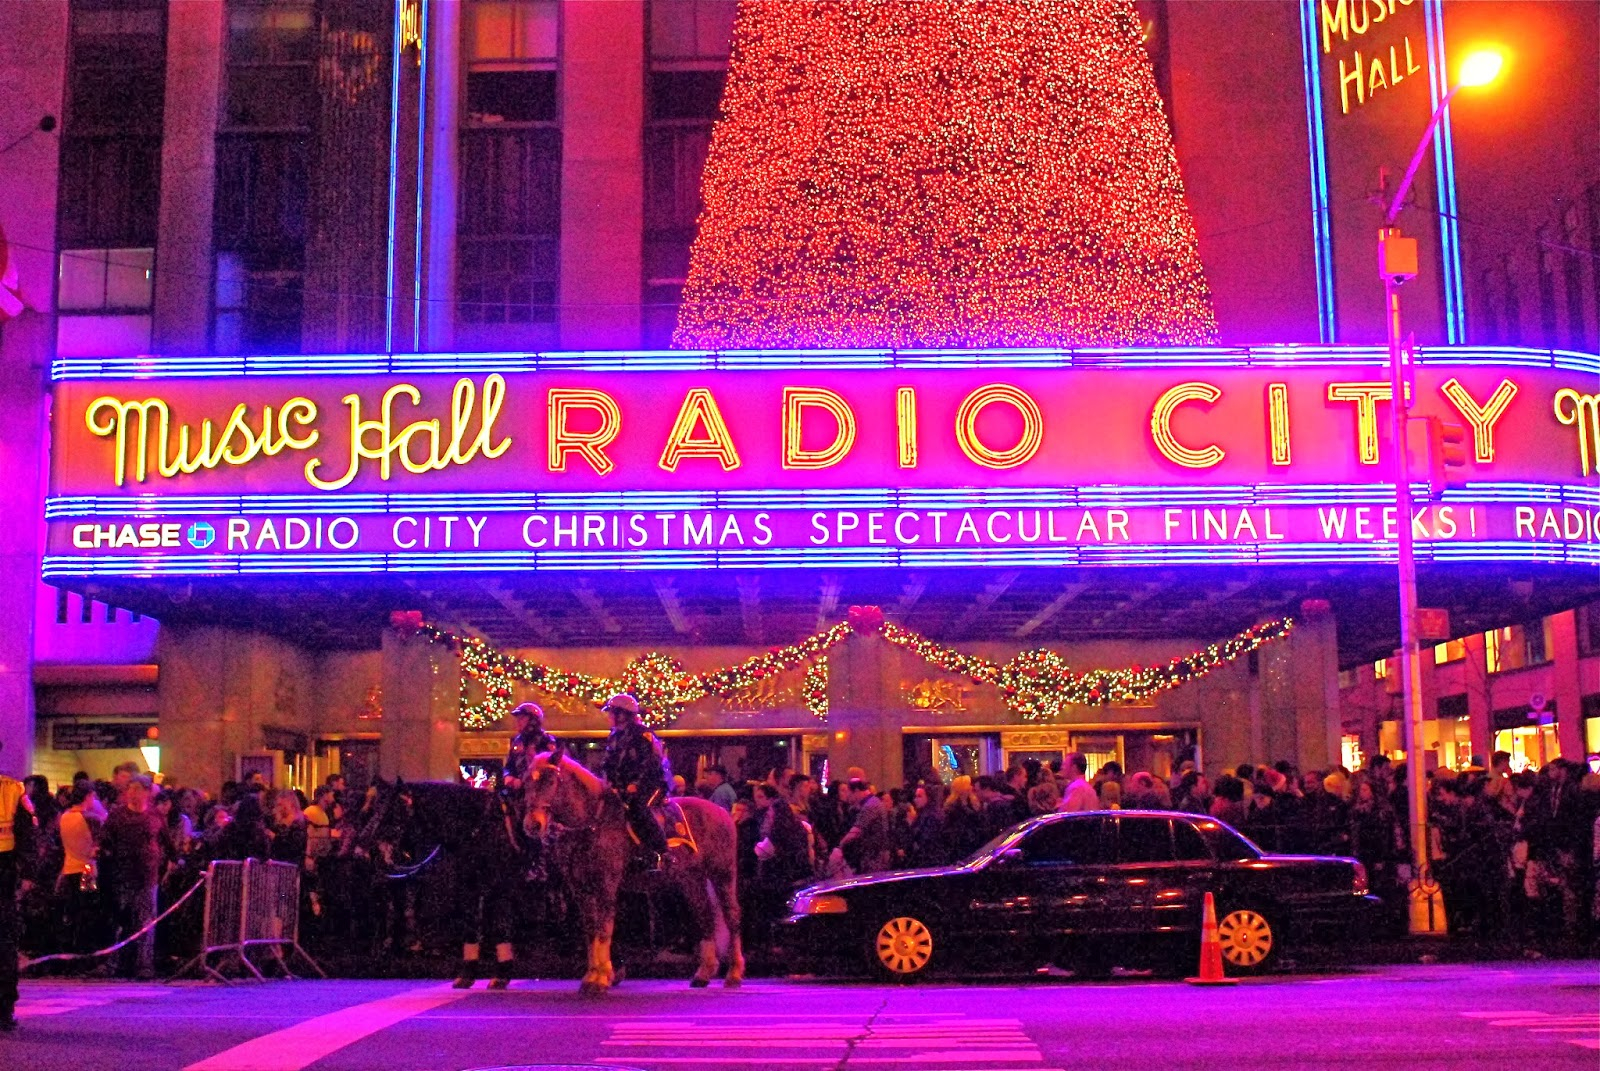 NYC ♥ NYC: Radio City Music Hall Christmas